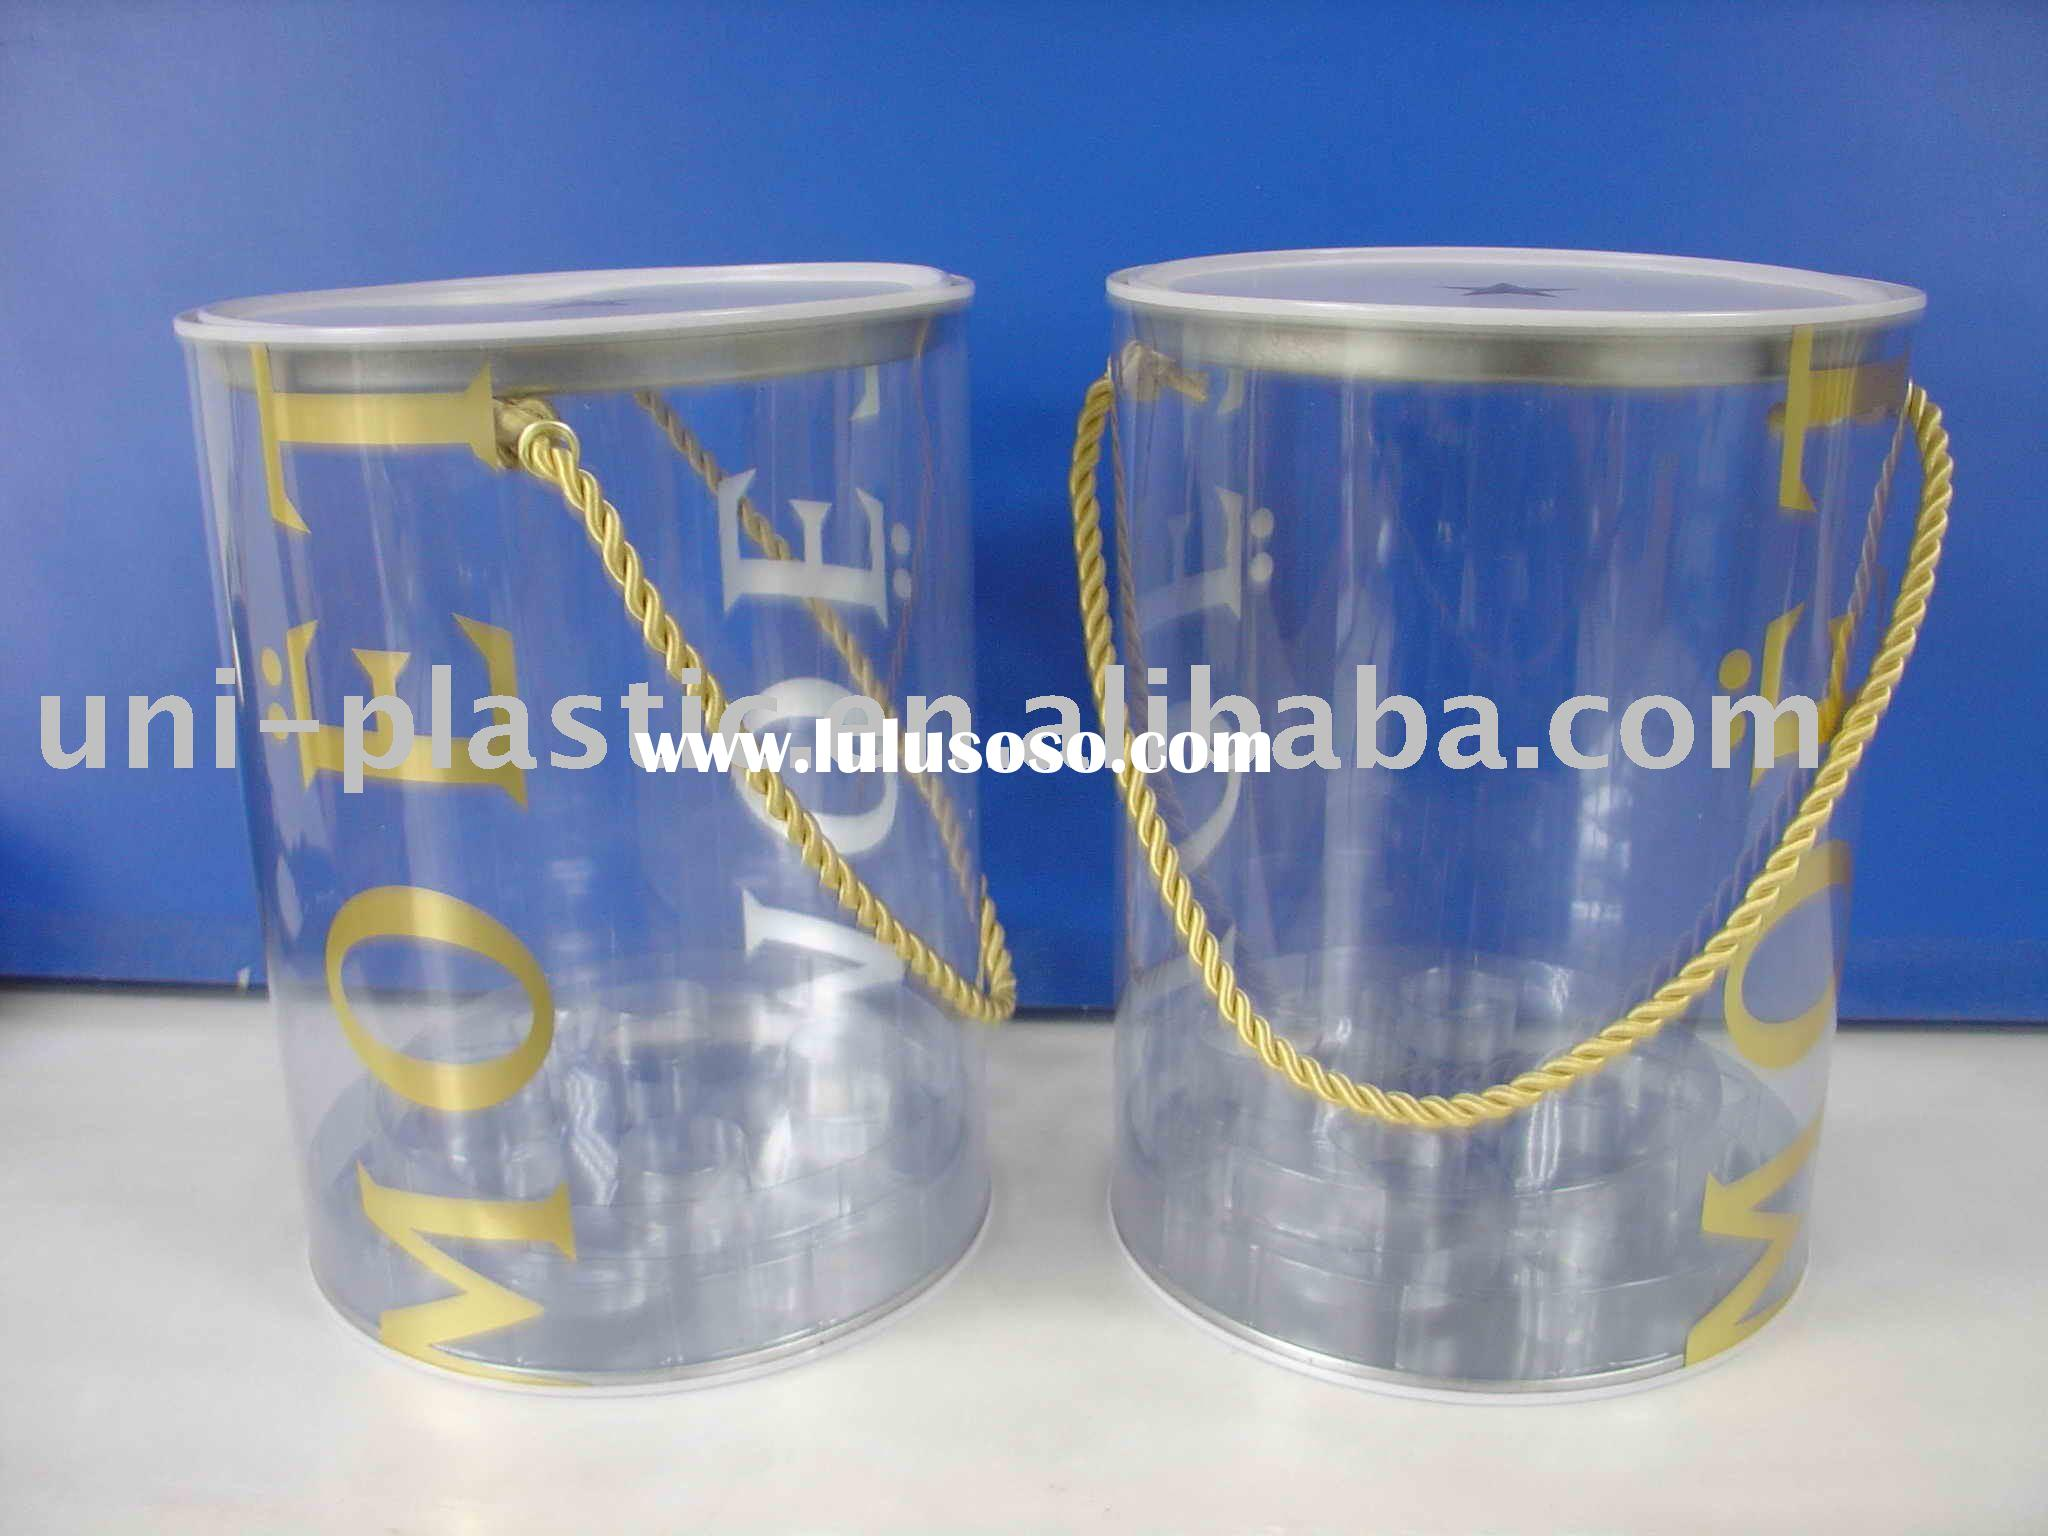 1 Quart Clear Paint Cans Wth Handle For Sale Price China